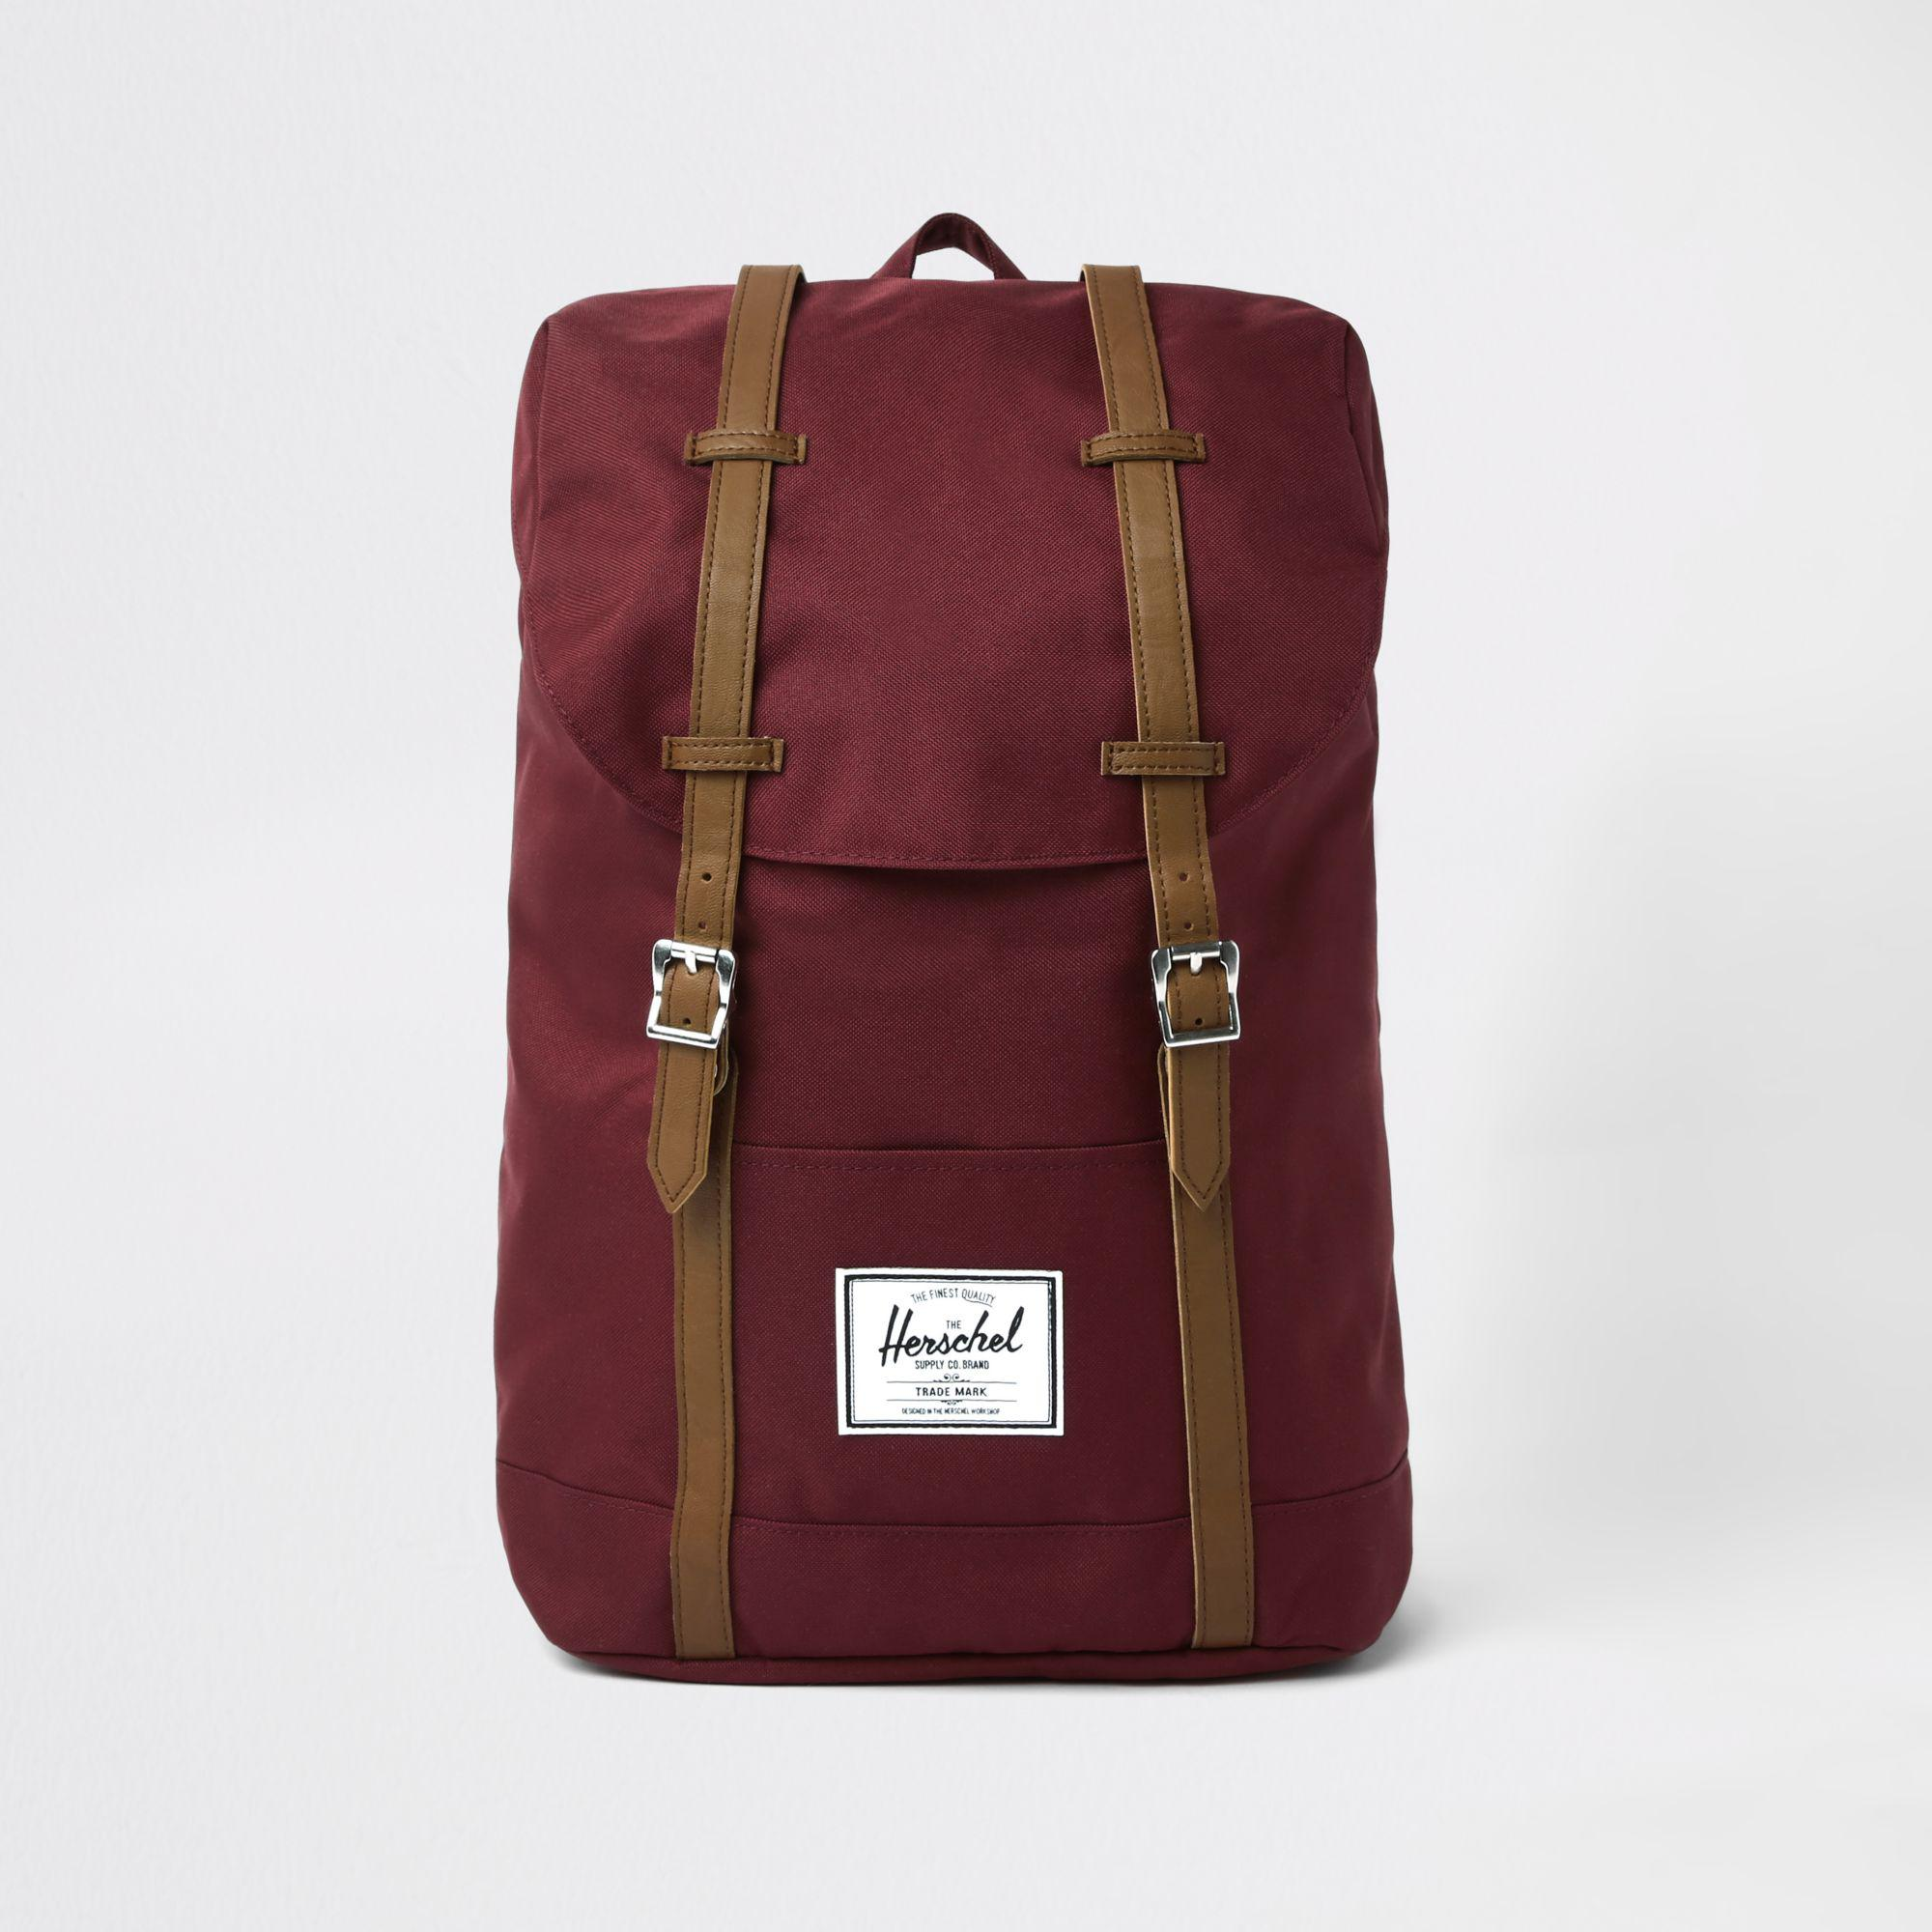 201a1a9445e1 Herschel Supply Co. Retreat Backpack in Red for Men - Lyst